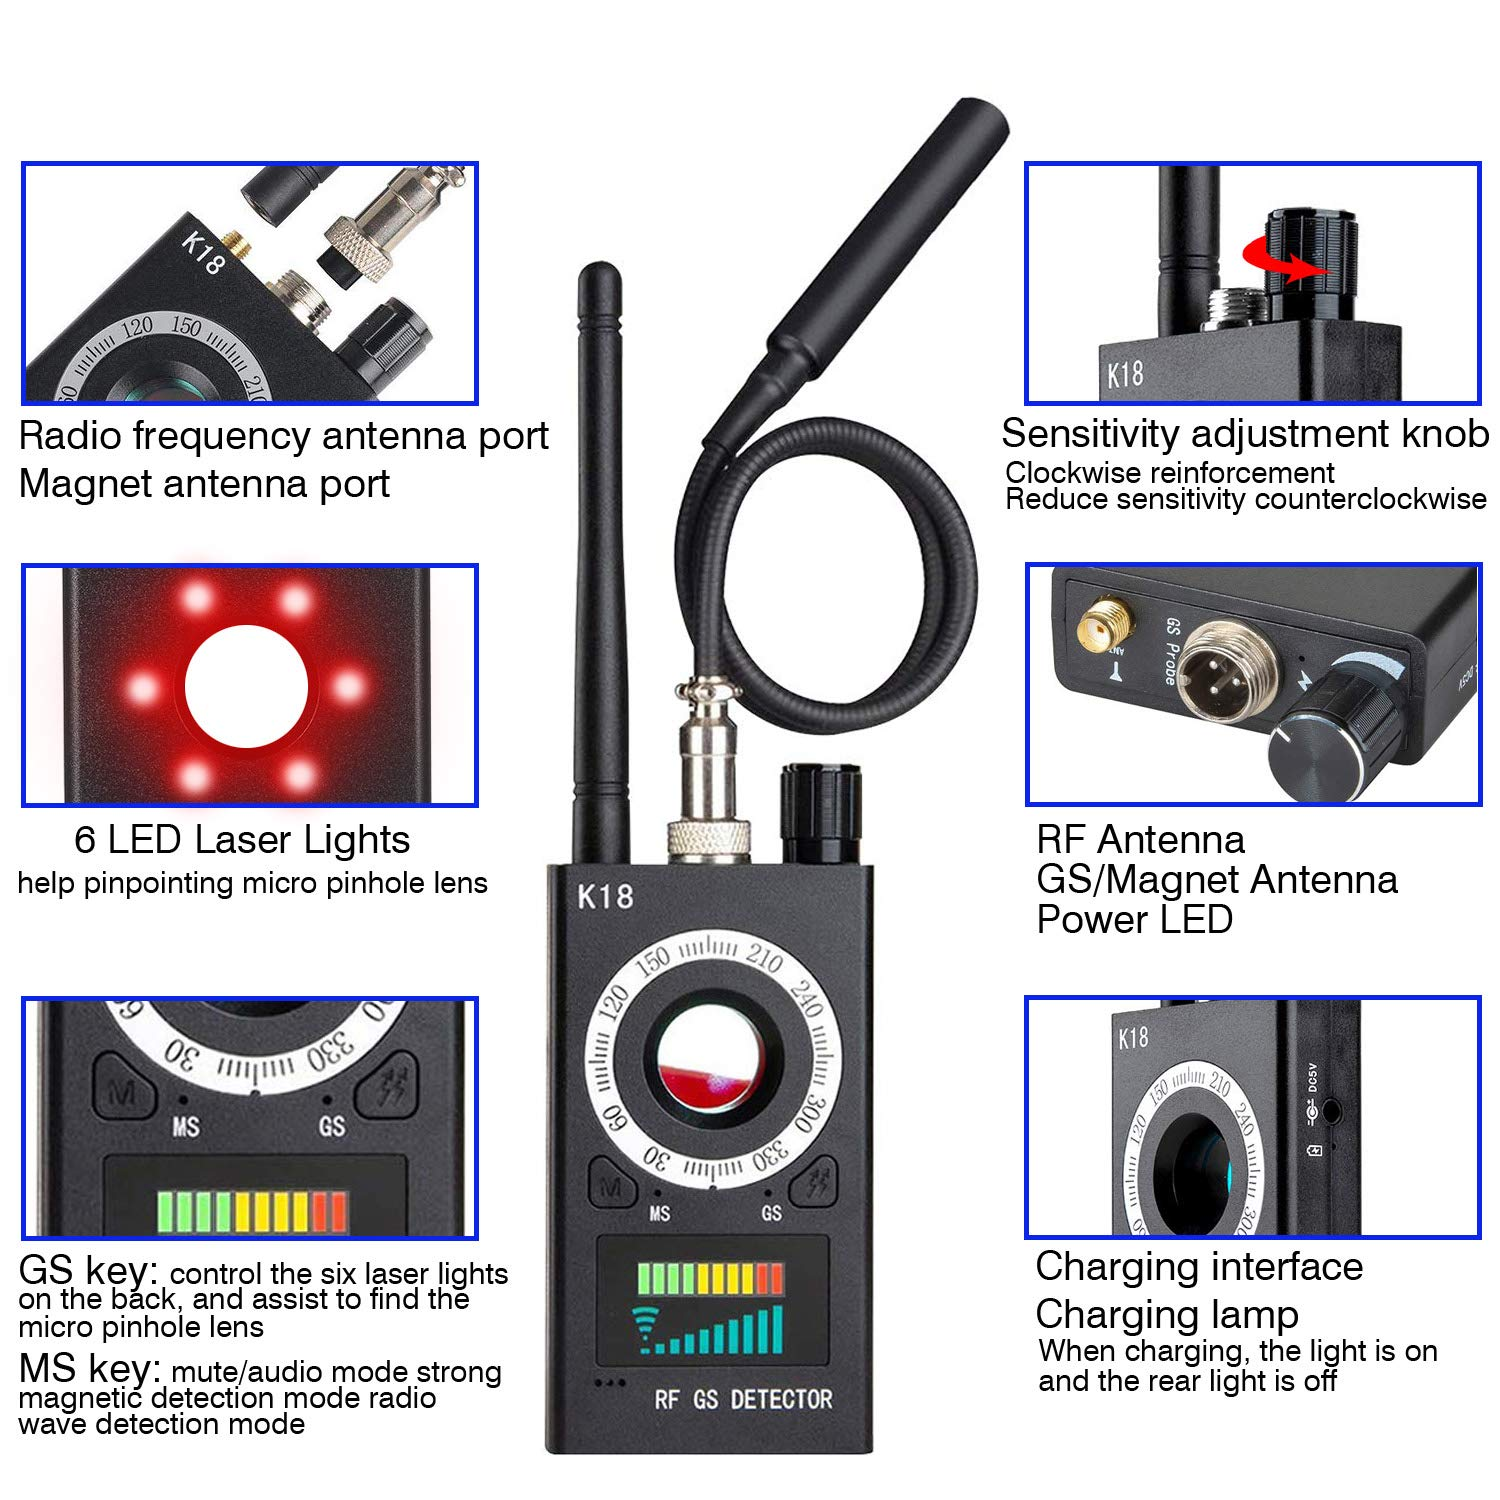 Anti Spy Detector & Camera Finder RF Signal Detector GPS Bug Detector Hidden Camera Detector for GSM Tracking Device GPS Radar Radio Frequency Detector by techtop (Image #3)